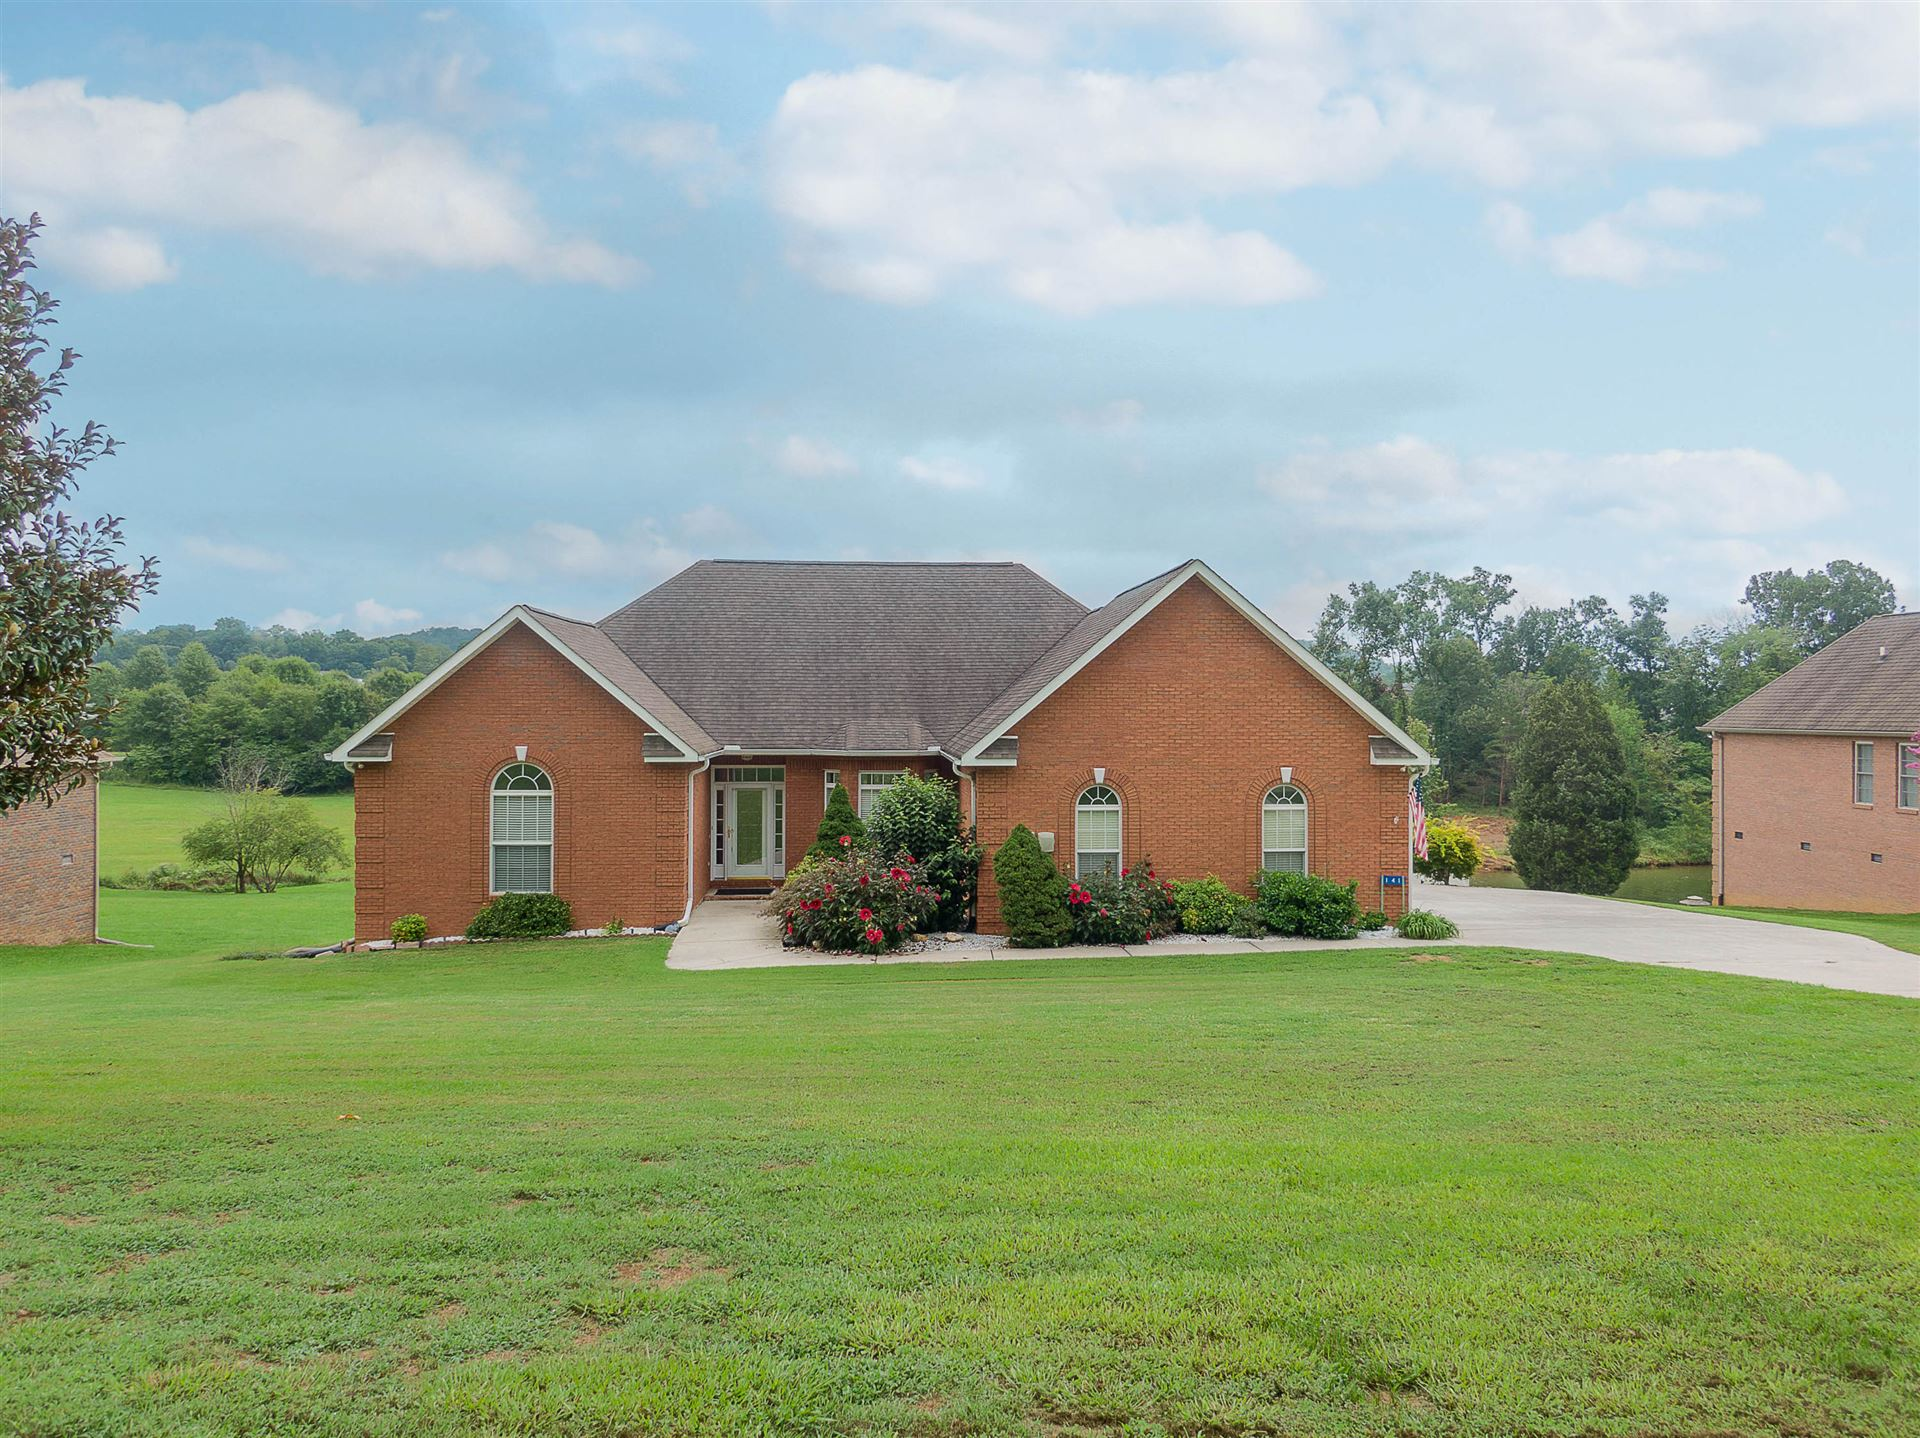 Photo for 141 Harbour View Way, Kingston, TN 37763 (MLS # 1128551)